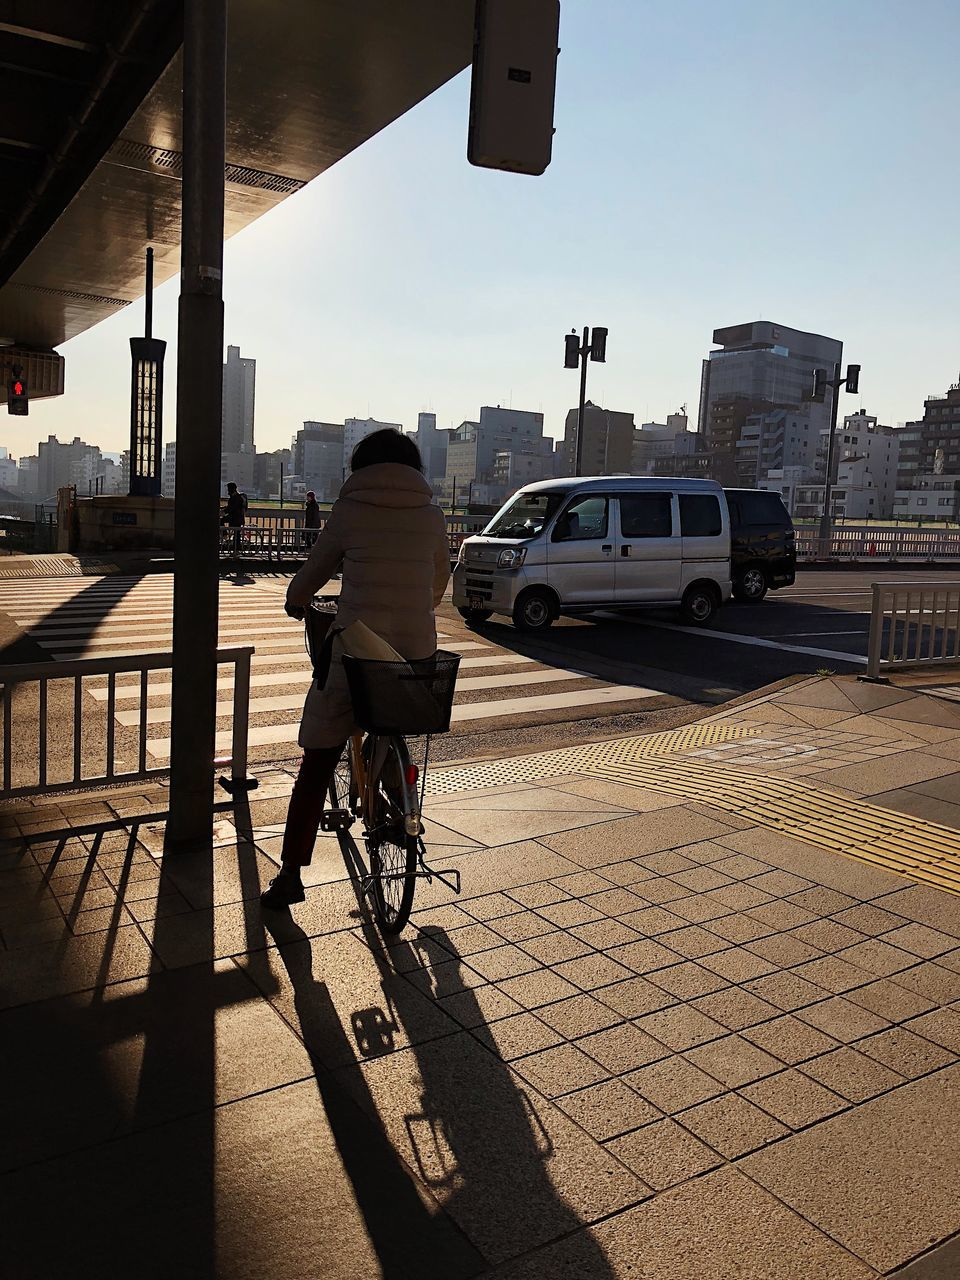 REAR VIEW OF PERSON RIDING BICYCLE ON CITY